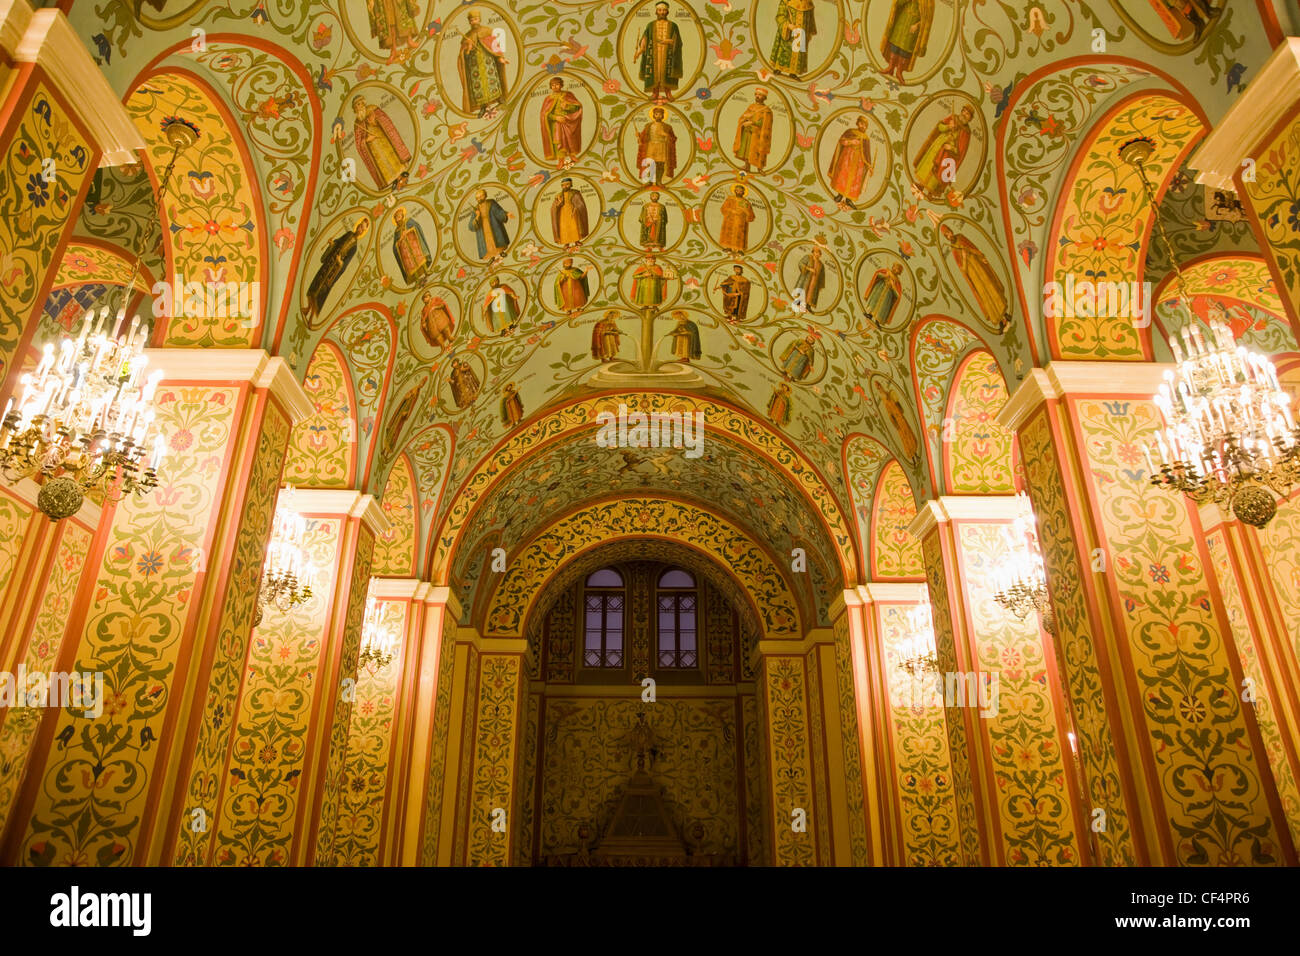 beautiful religious painting on walls and ceiling in historical ...